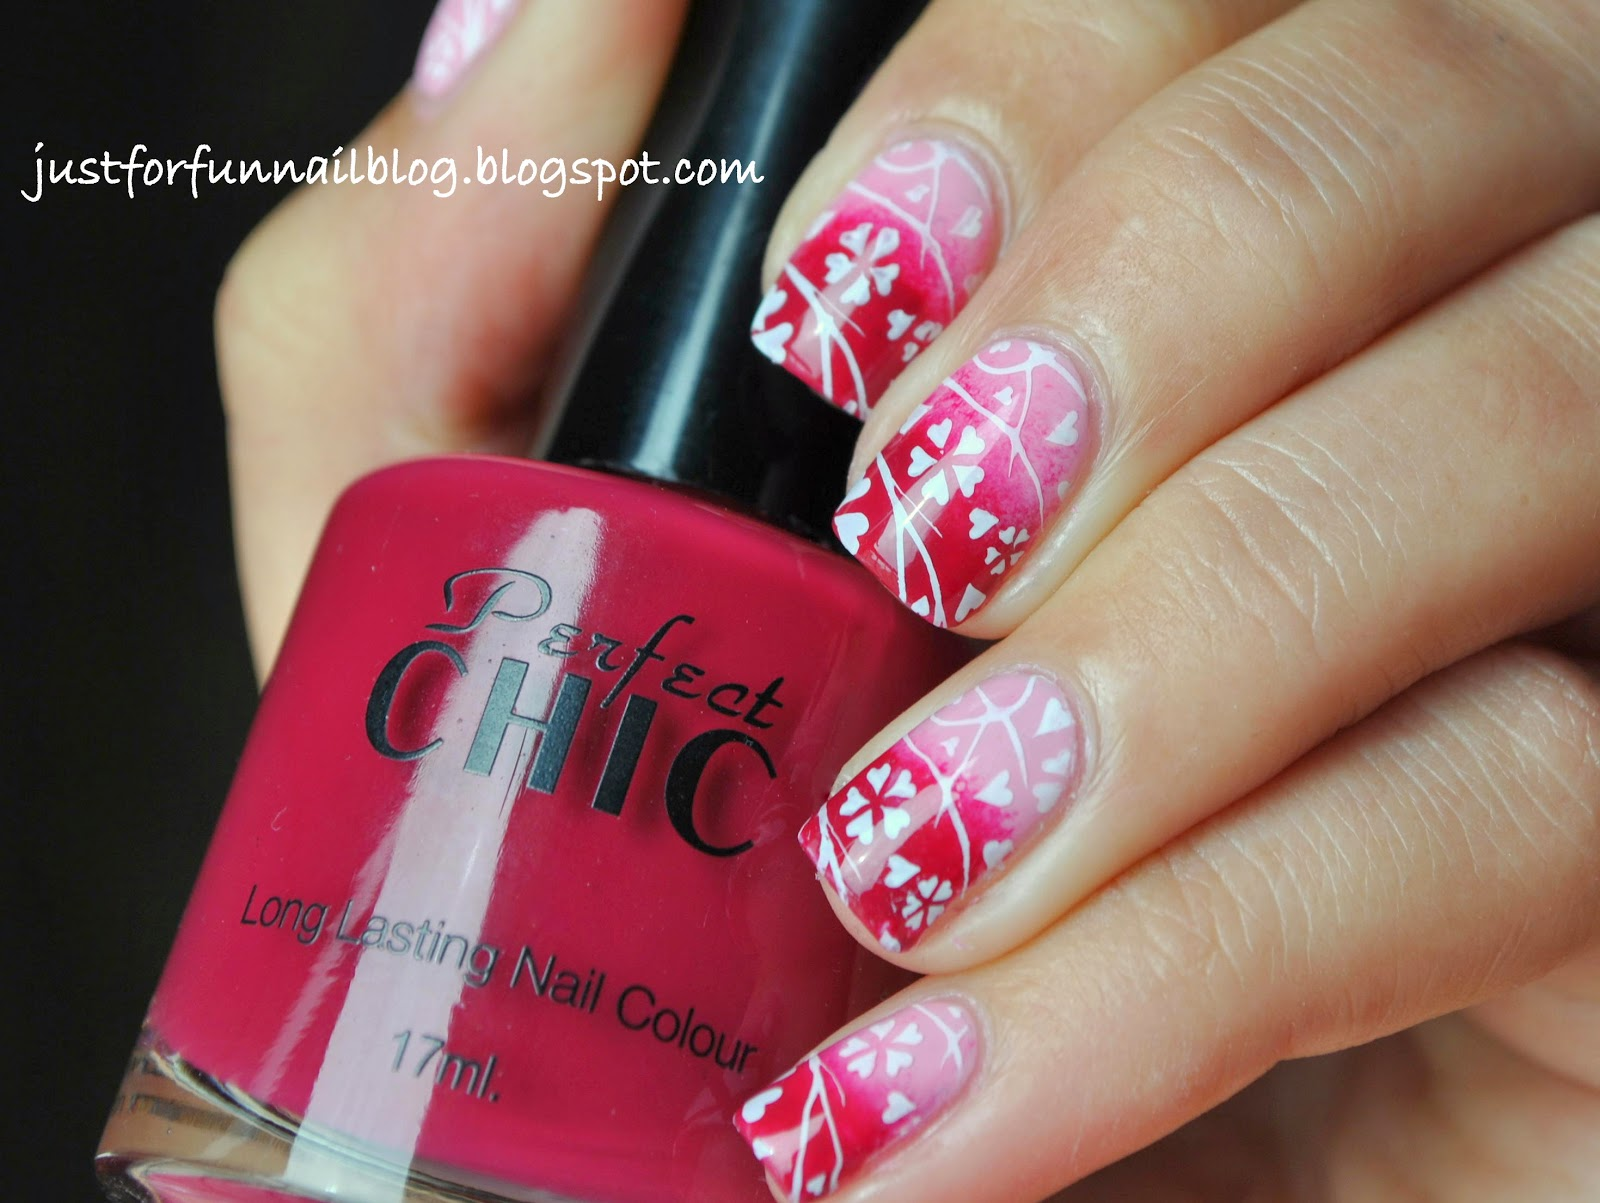 Springy Pink Gradient with Pueen33 Stamping Plate